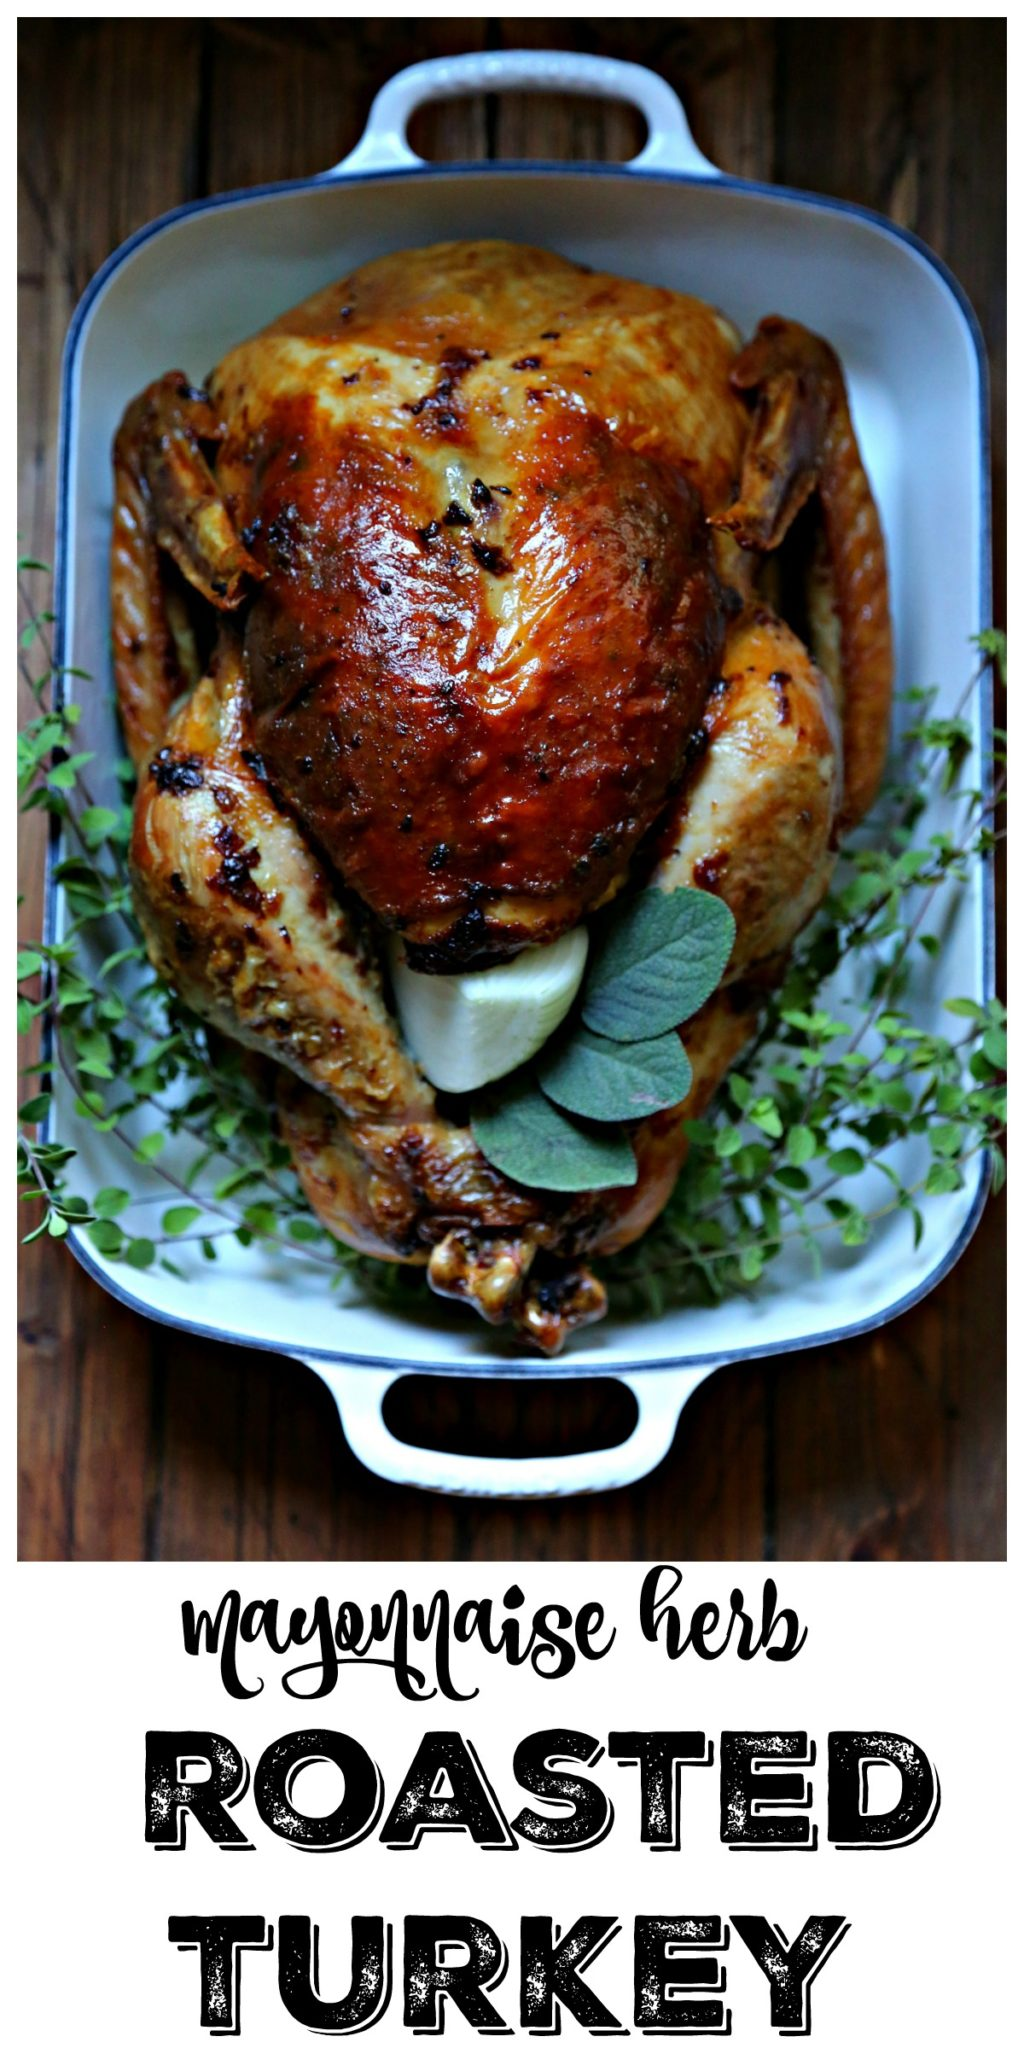 Want the secret to a juicy turkey? Mayonnaise. Yes. Mayonnaise Herb Roasted Turkey is perfectly juicy and worthy of your Thanksgiving table #turkey #thanksgiving #thanksgivingturkey #roastedturkey #turkeyrecipes #FallForHellmanns